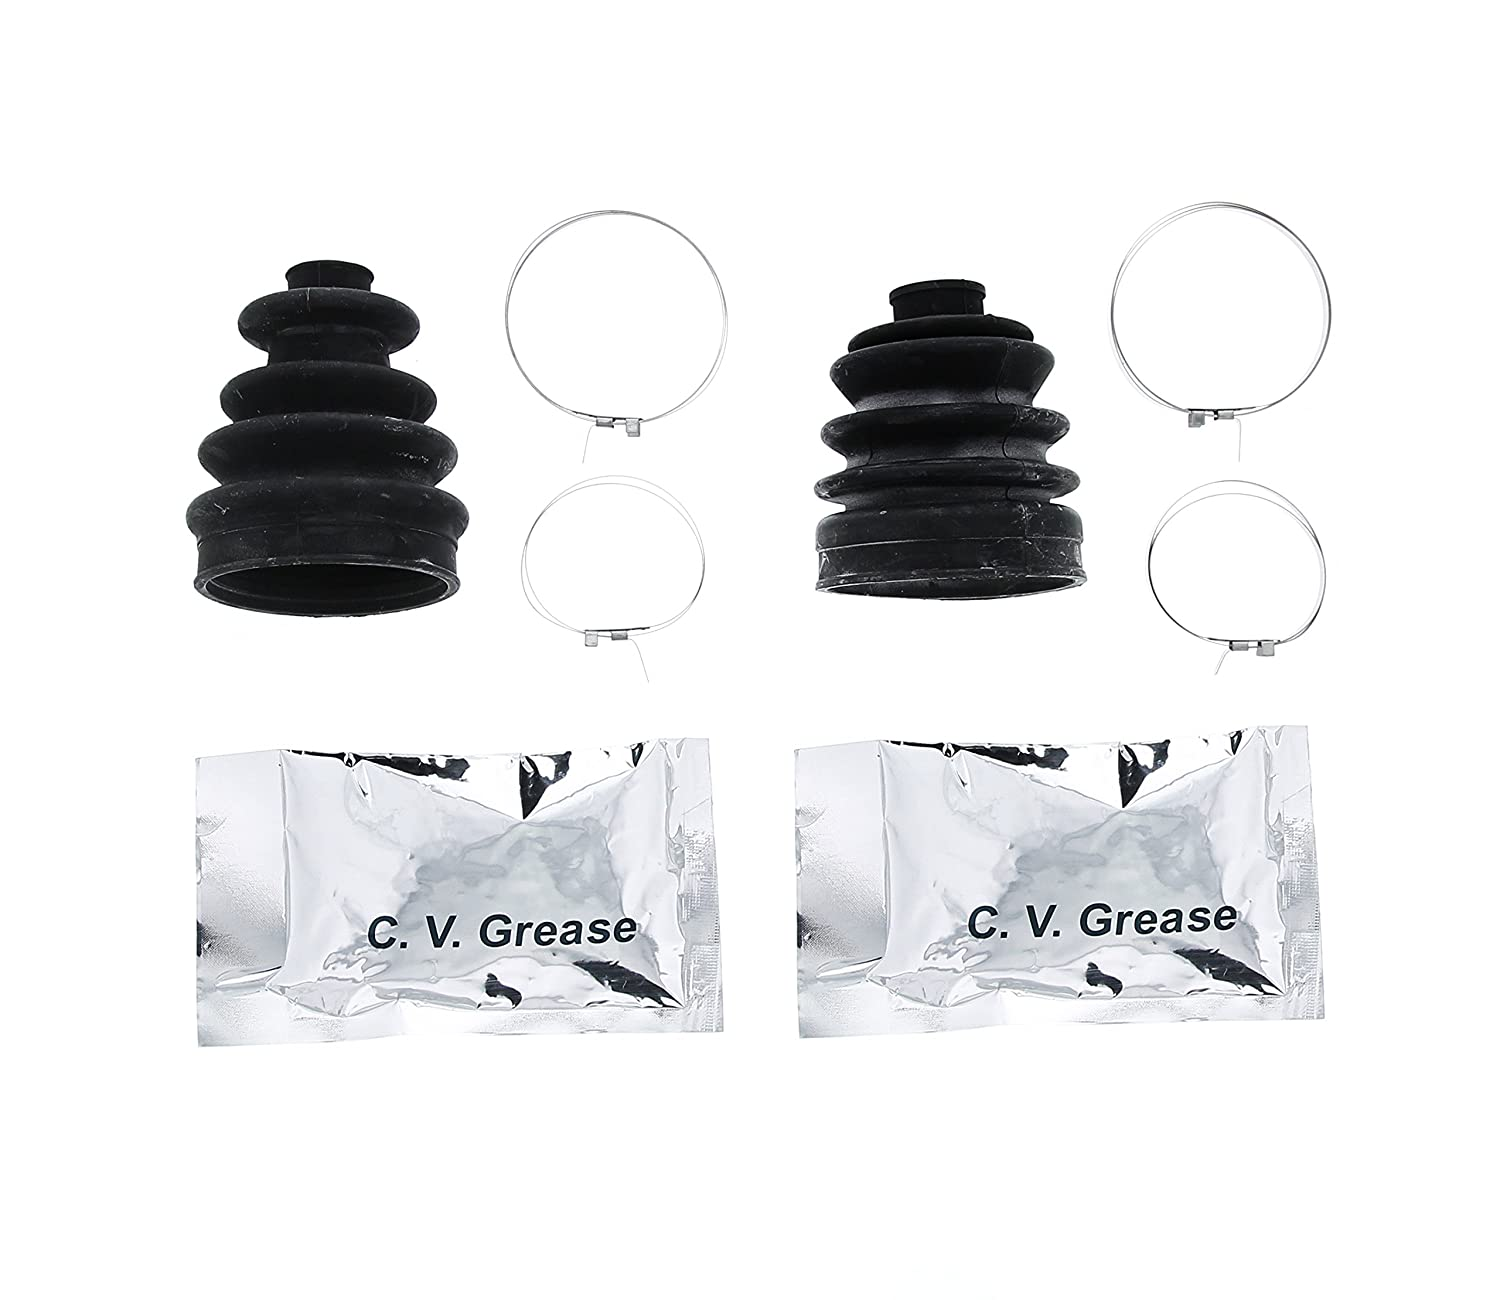 Polaris Sportsman 800 CV Boot Kit Front Inner and Outer 2006-2010